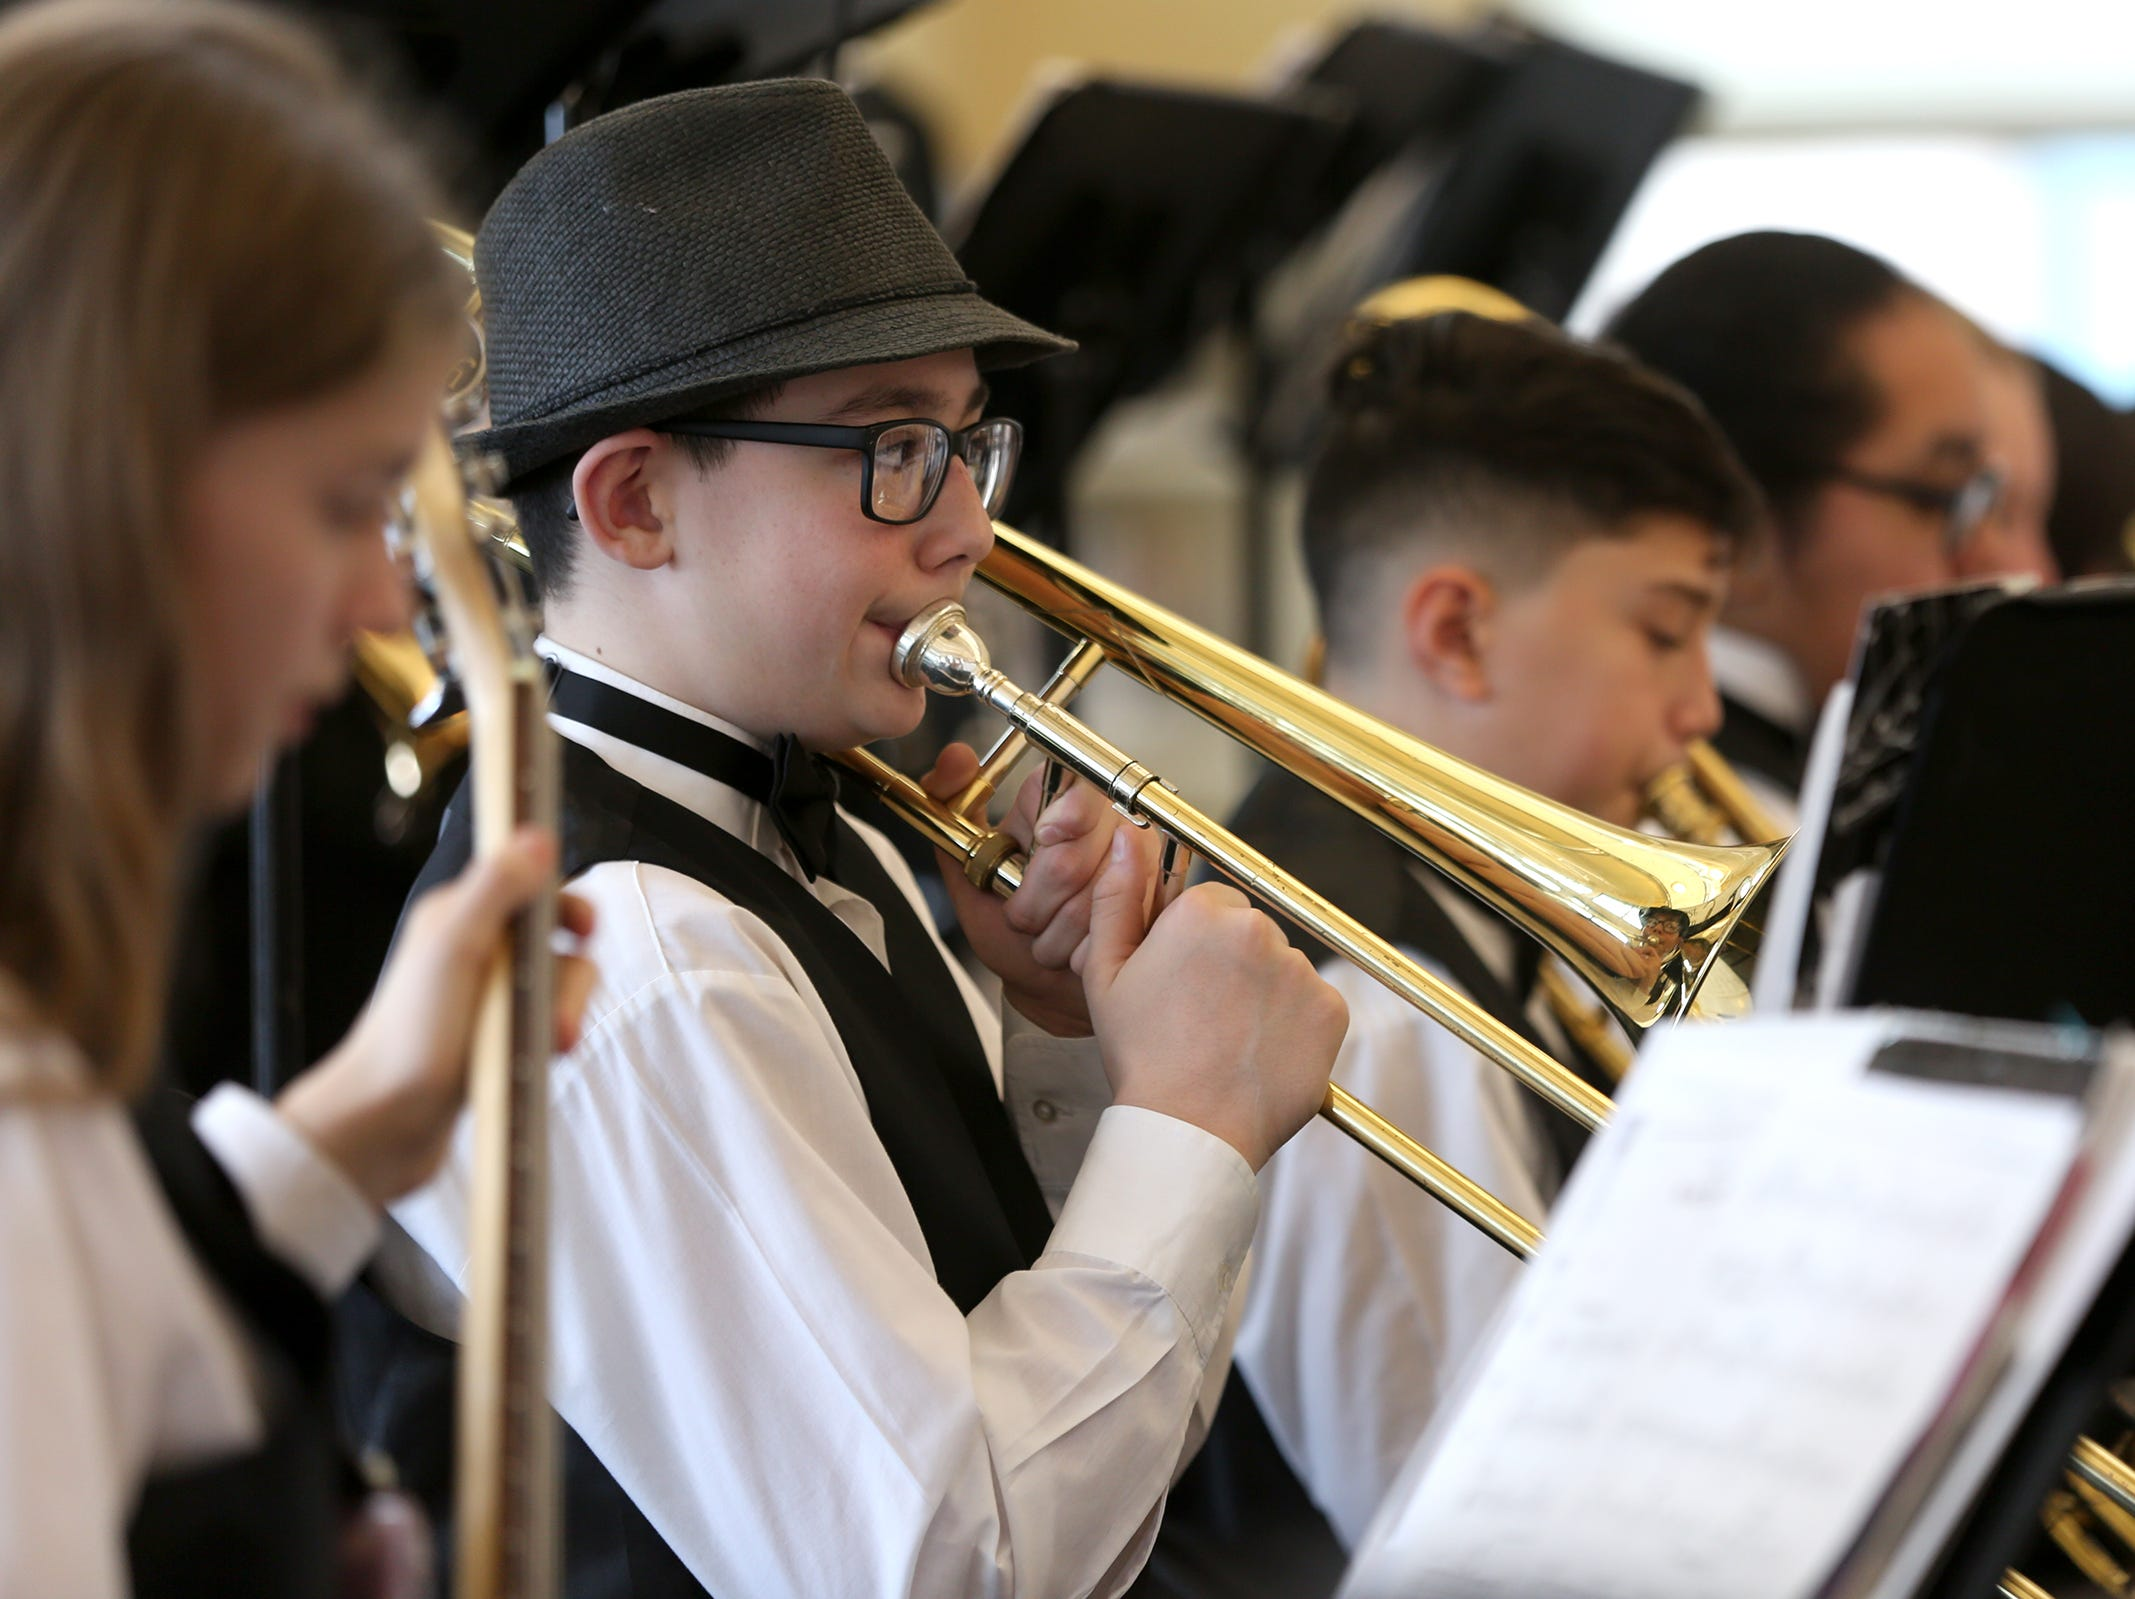 Parish Middle School jazz band students perform at the annual West Salem Jazz Festival at West Salem High School on Saturday, Feb. 9, 2019.